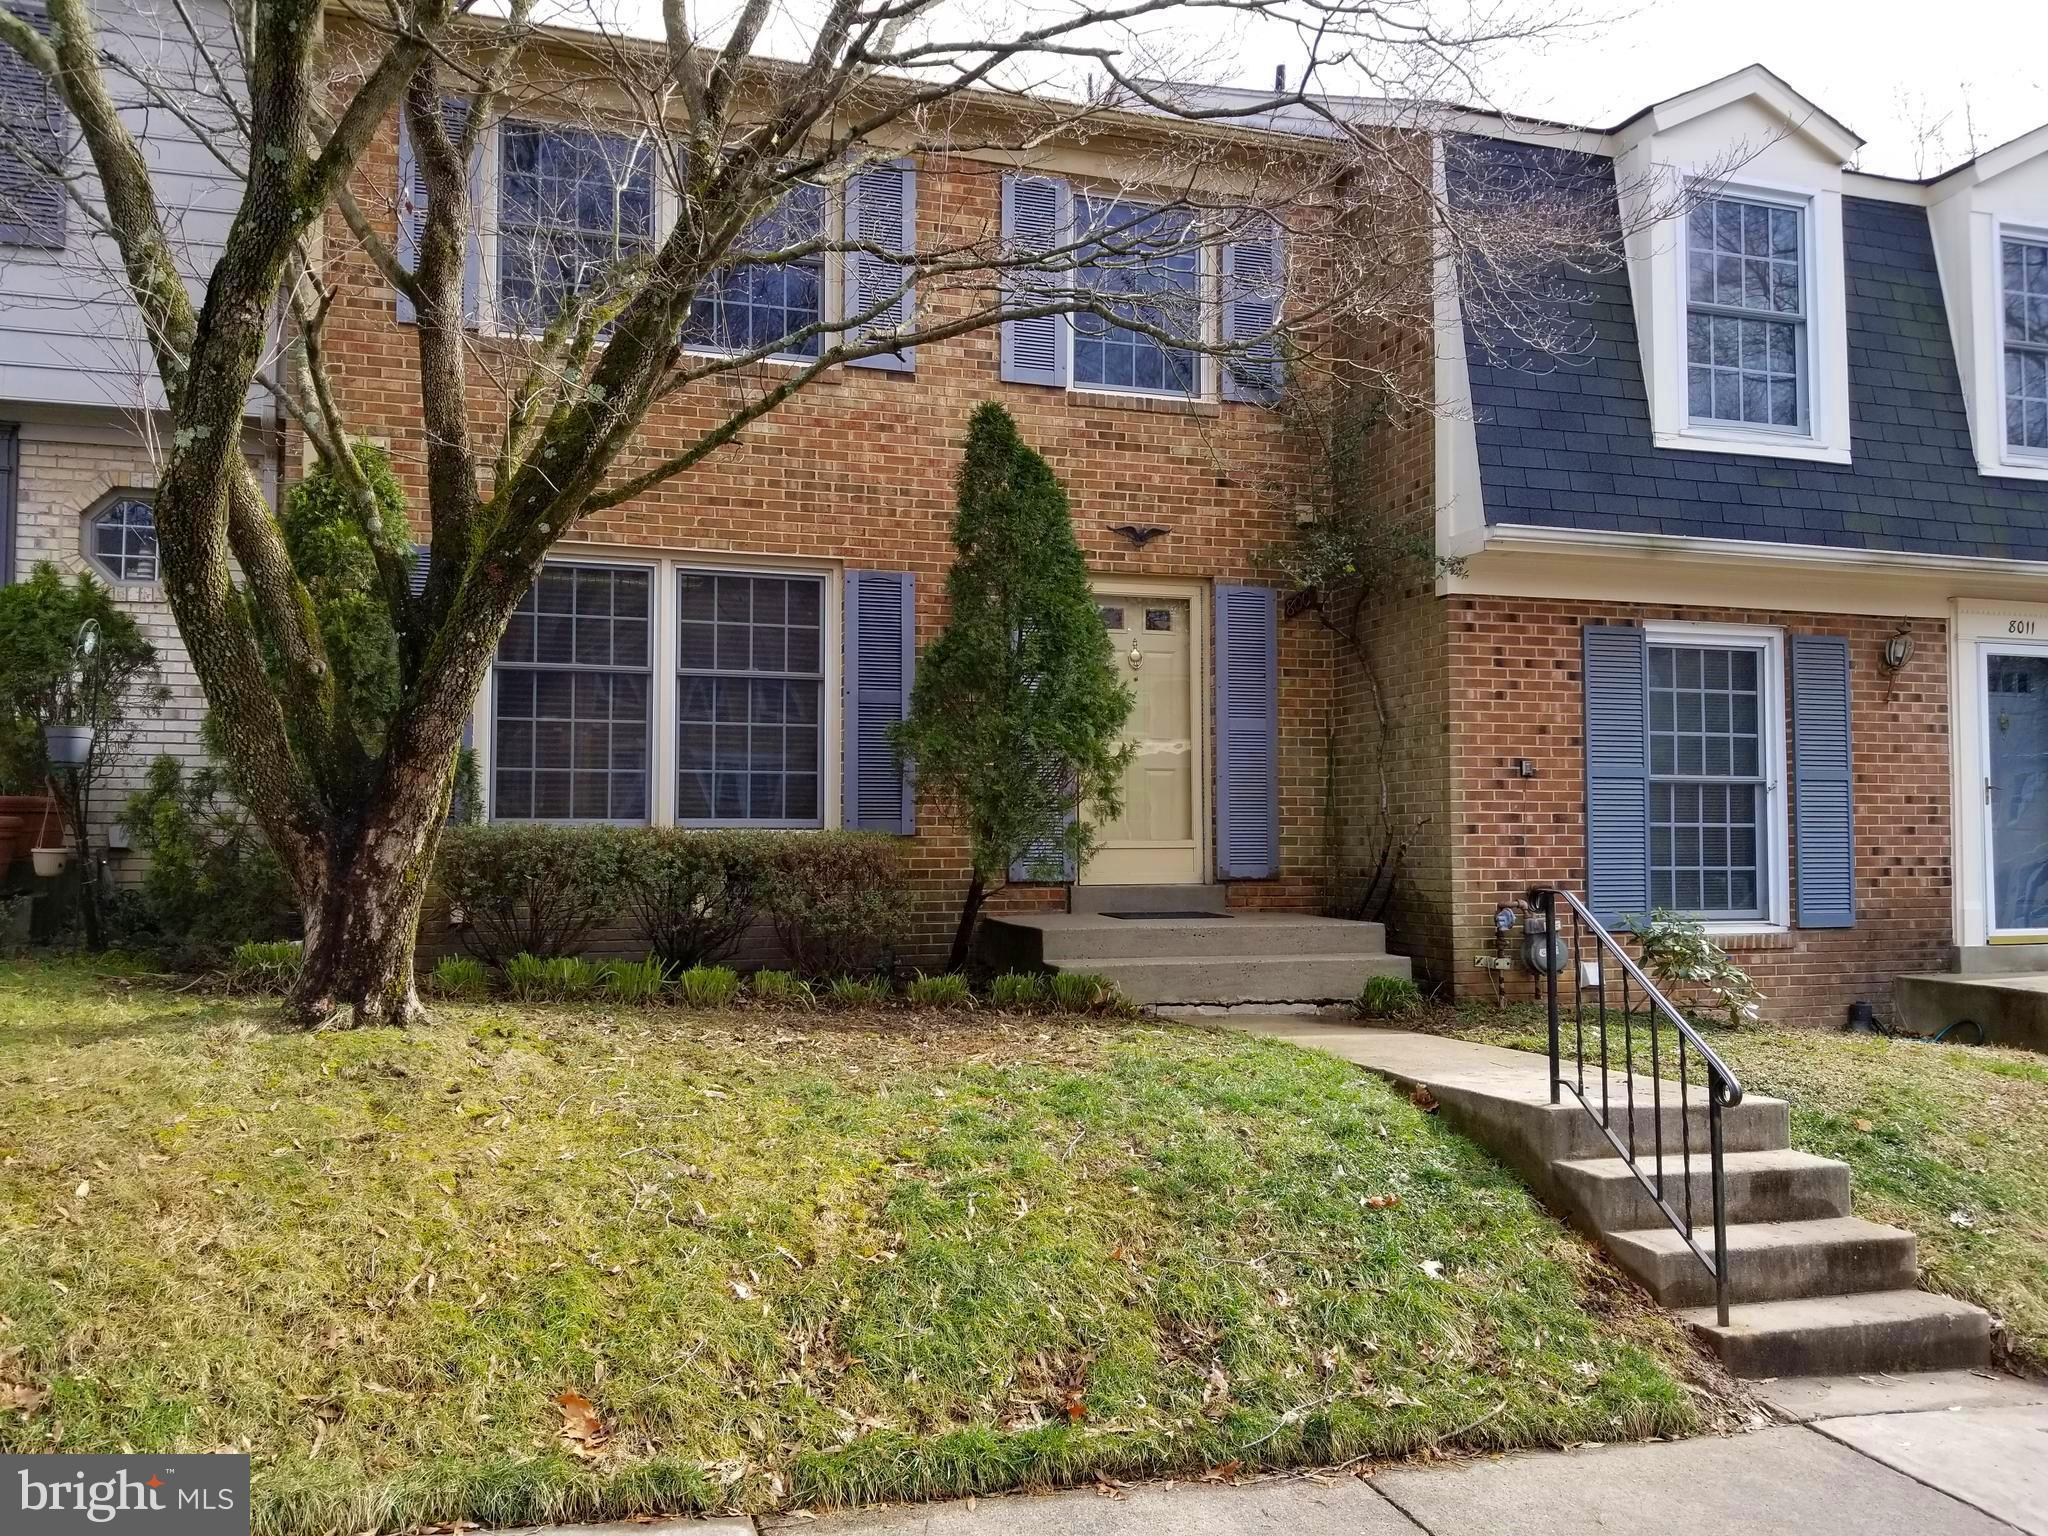 Large, well-maintained townhome in a tranquil neighborhood with three bedrooms, two full baths, 2 half baths, dining room, living room, and family room. Entry level has a rear walkout to a spacious deck overlooking a grassy courtyard. Neighborhood is surrounded by wooded areas and has an entrance to Fairfax Cross-County Trail. Common areas include two playgrounds and basketball court, with tennis courts nearby. Close to shopping, dining, care facilities, and schools. Less than five miles from Springfield Town Center, Franconia-Springfield Metro Station, Interstate 95, and commuter lots. Short commute to DC, Pentagon, Ft. Belvoir, and several federal facilities. Commuter bus stop is a very short walk.  Less than 3 miles from the new National Geospatial-Intelligence Agency   building.  Short drive to shopping, post office and medical center.